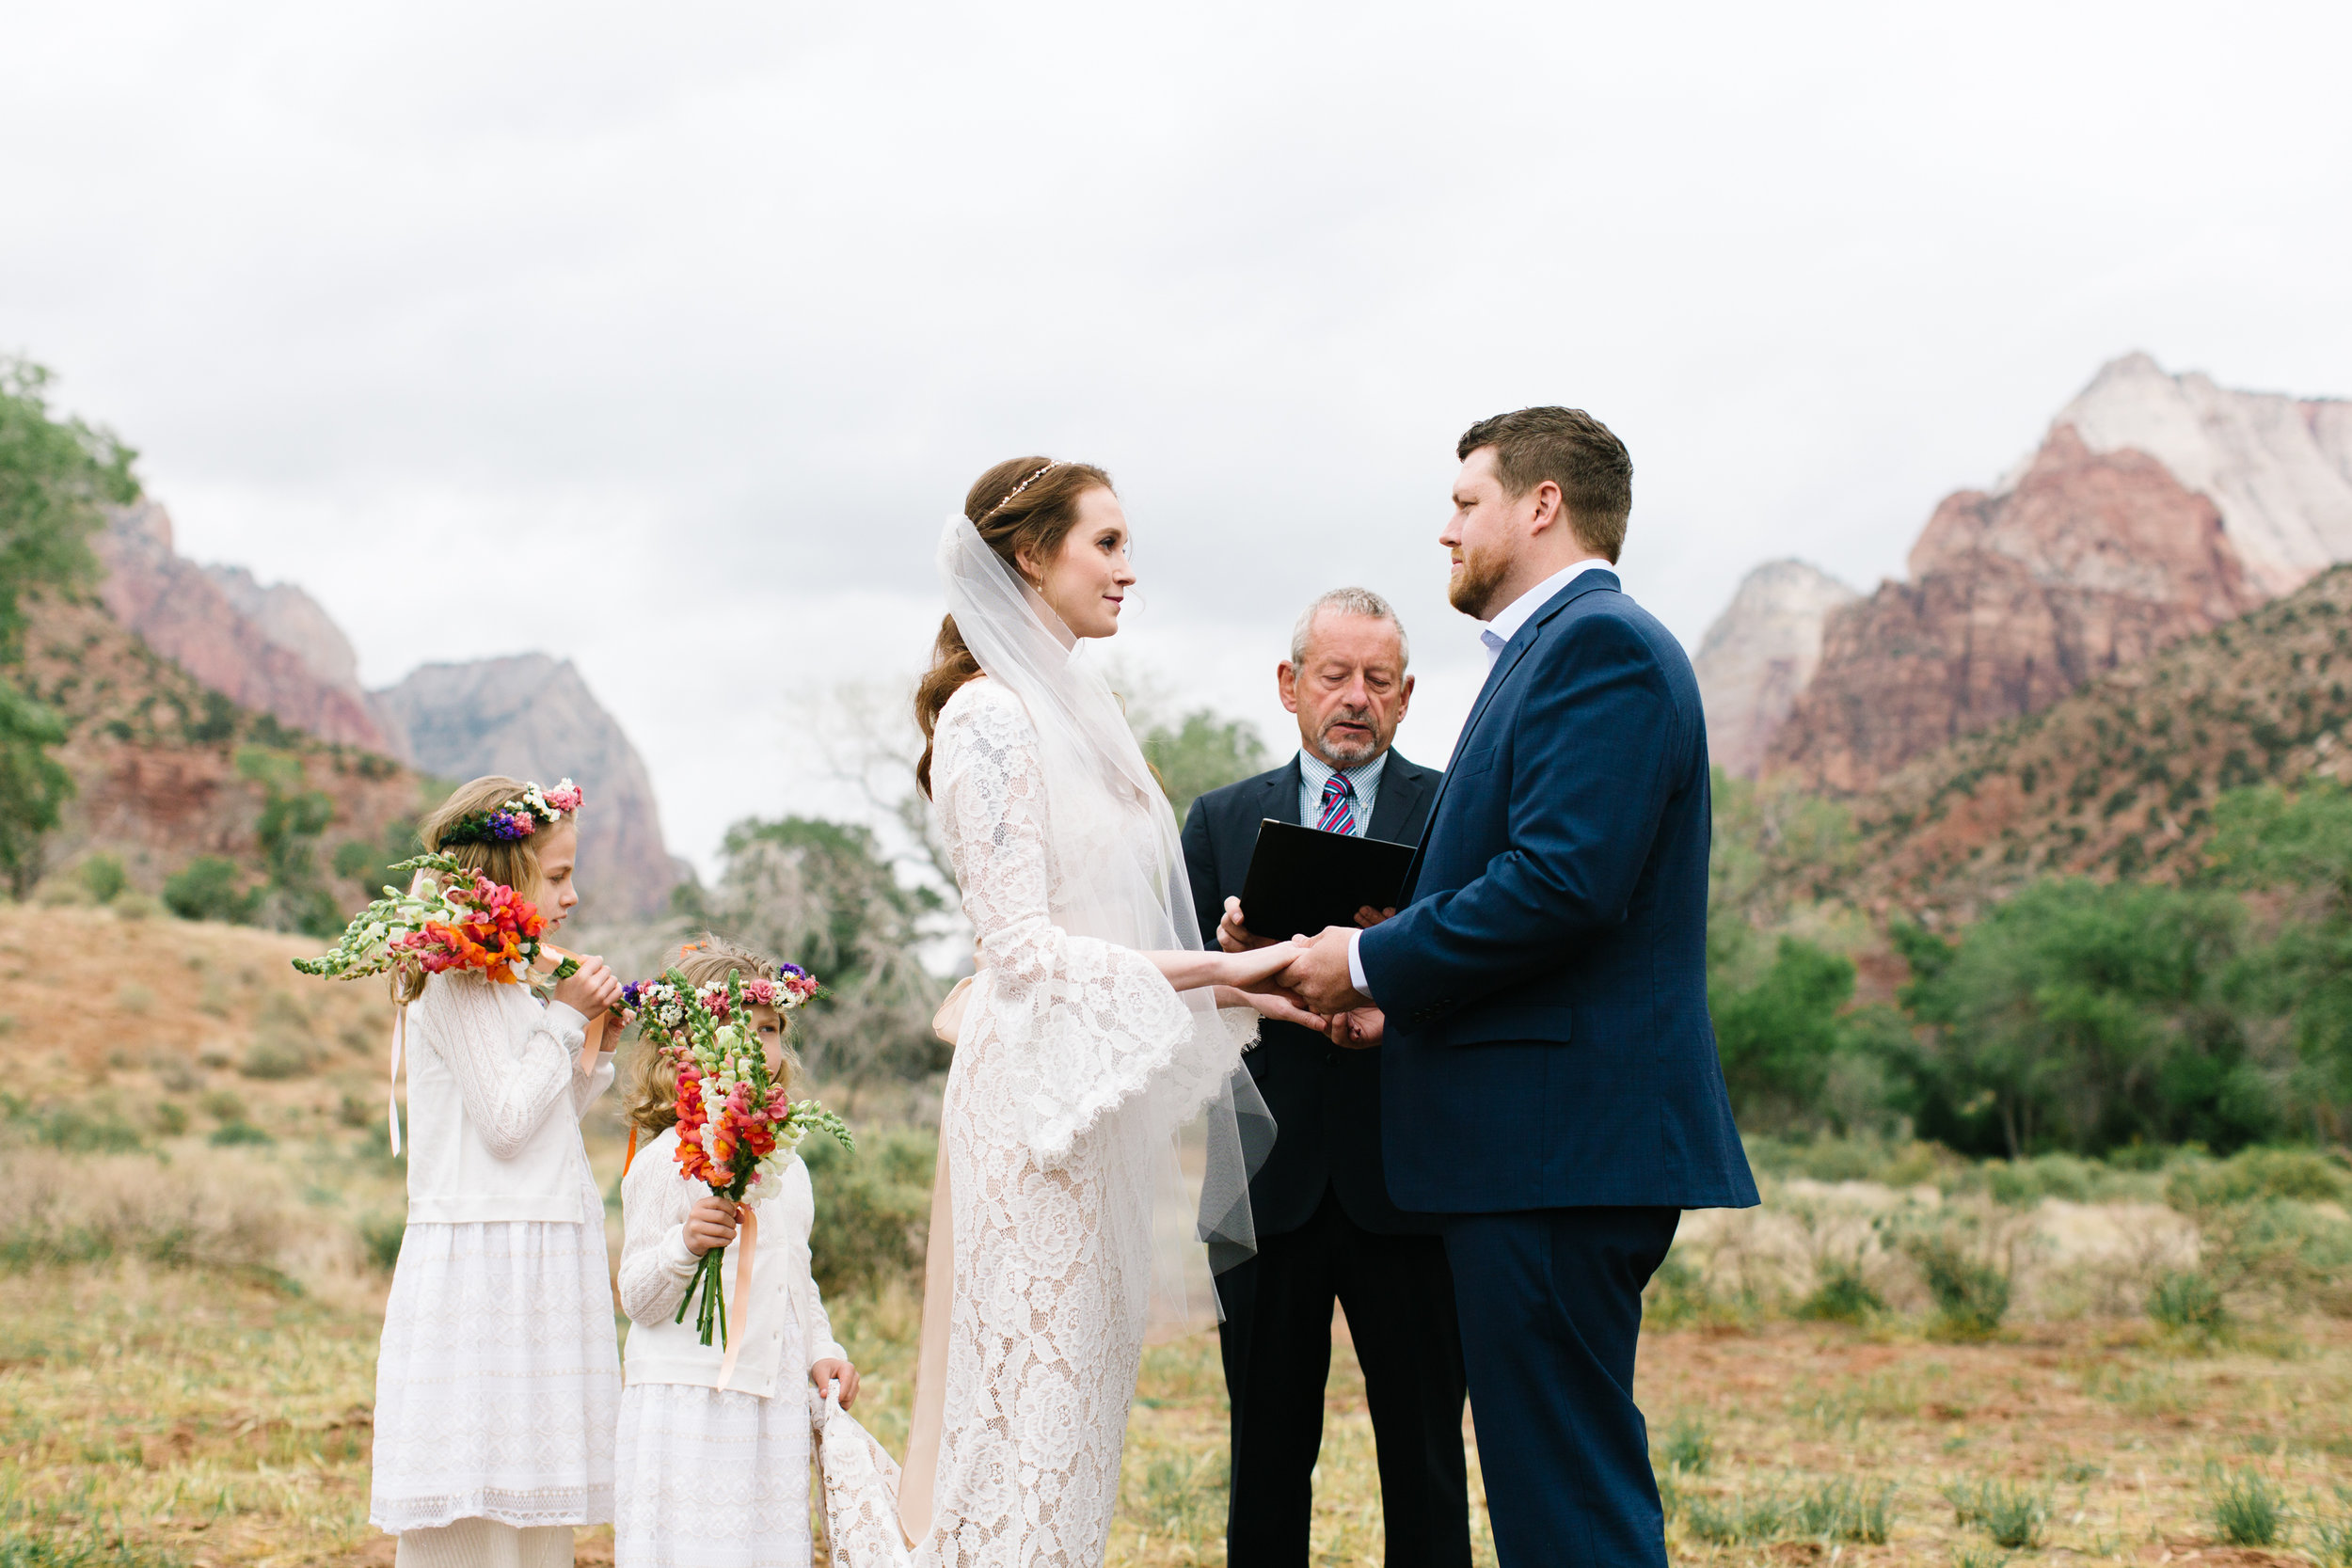 Zion National Park Wedding Photographer